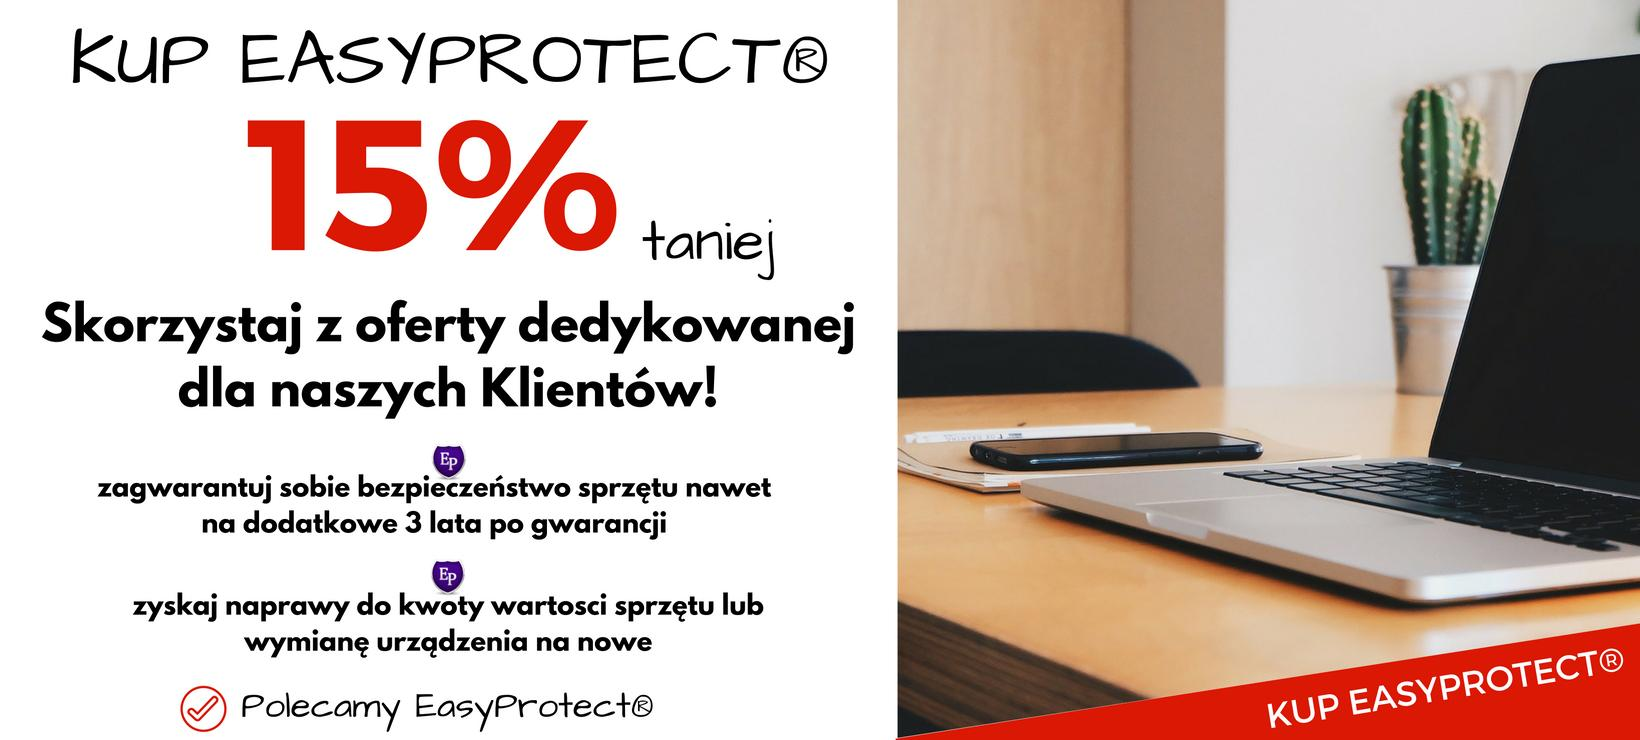 http://zaplac.easyprotect.pl/discount/8f103370be0c866d